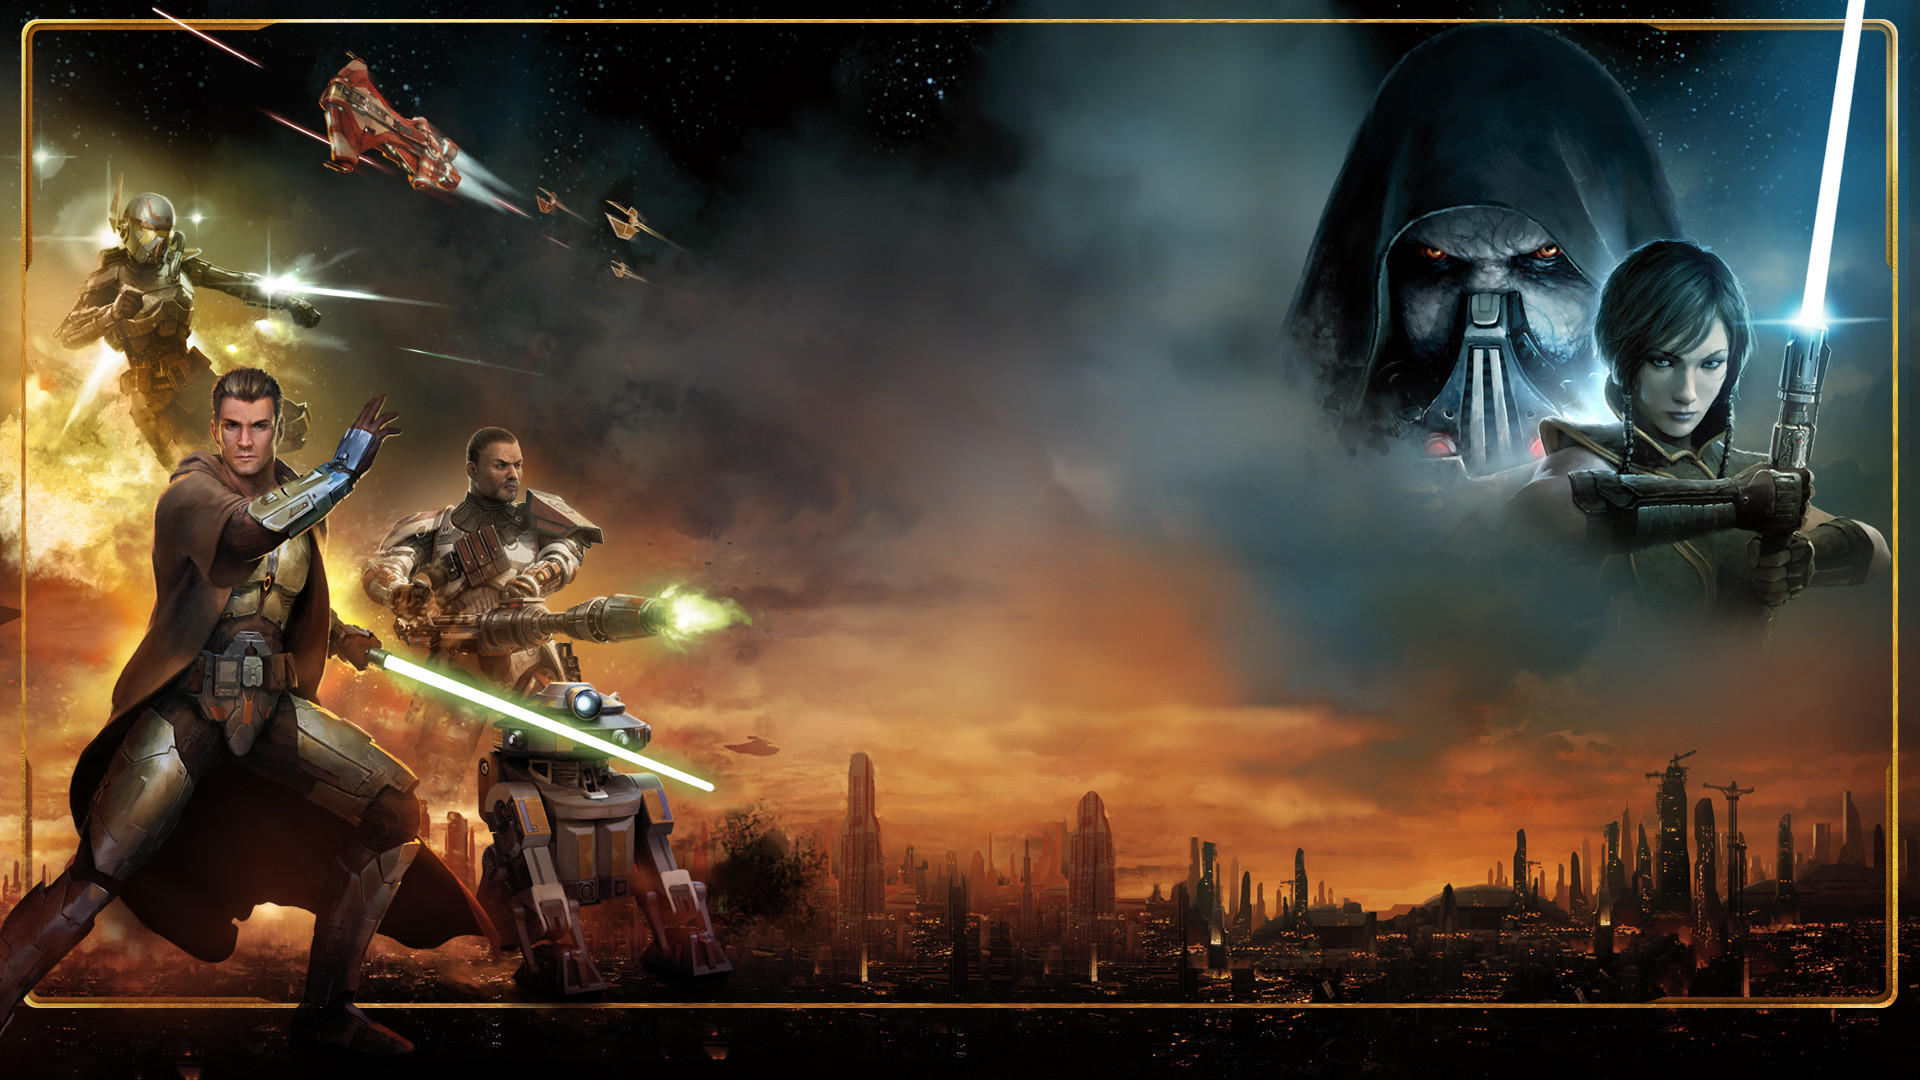 Res: 1920x1080, star wars tor wallpaper k1awx9